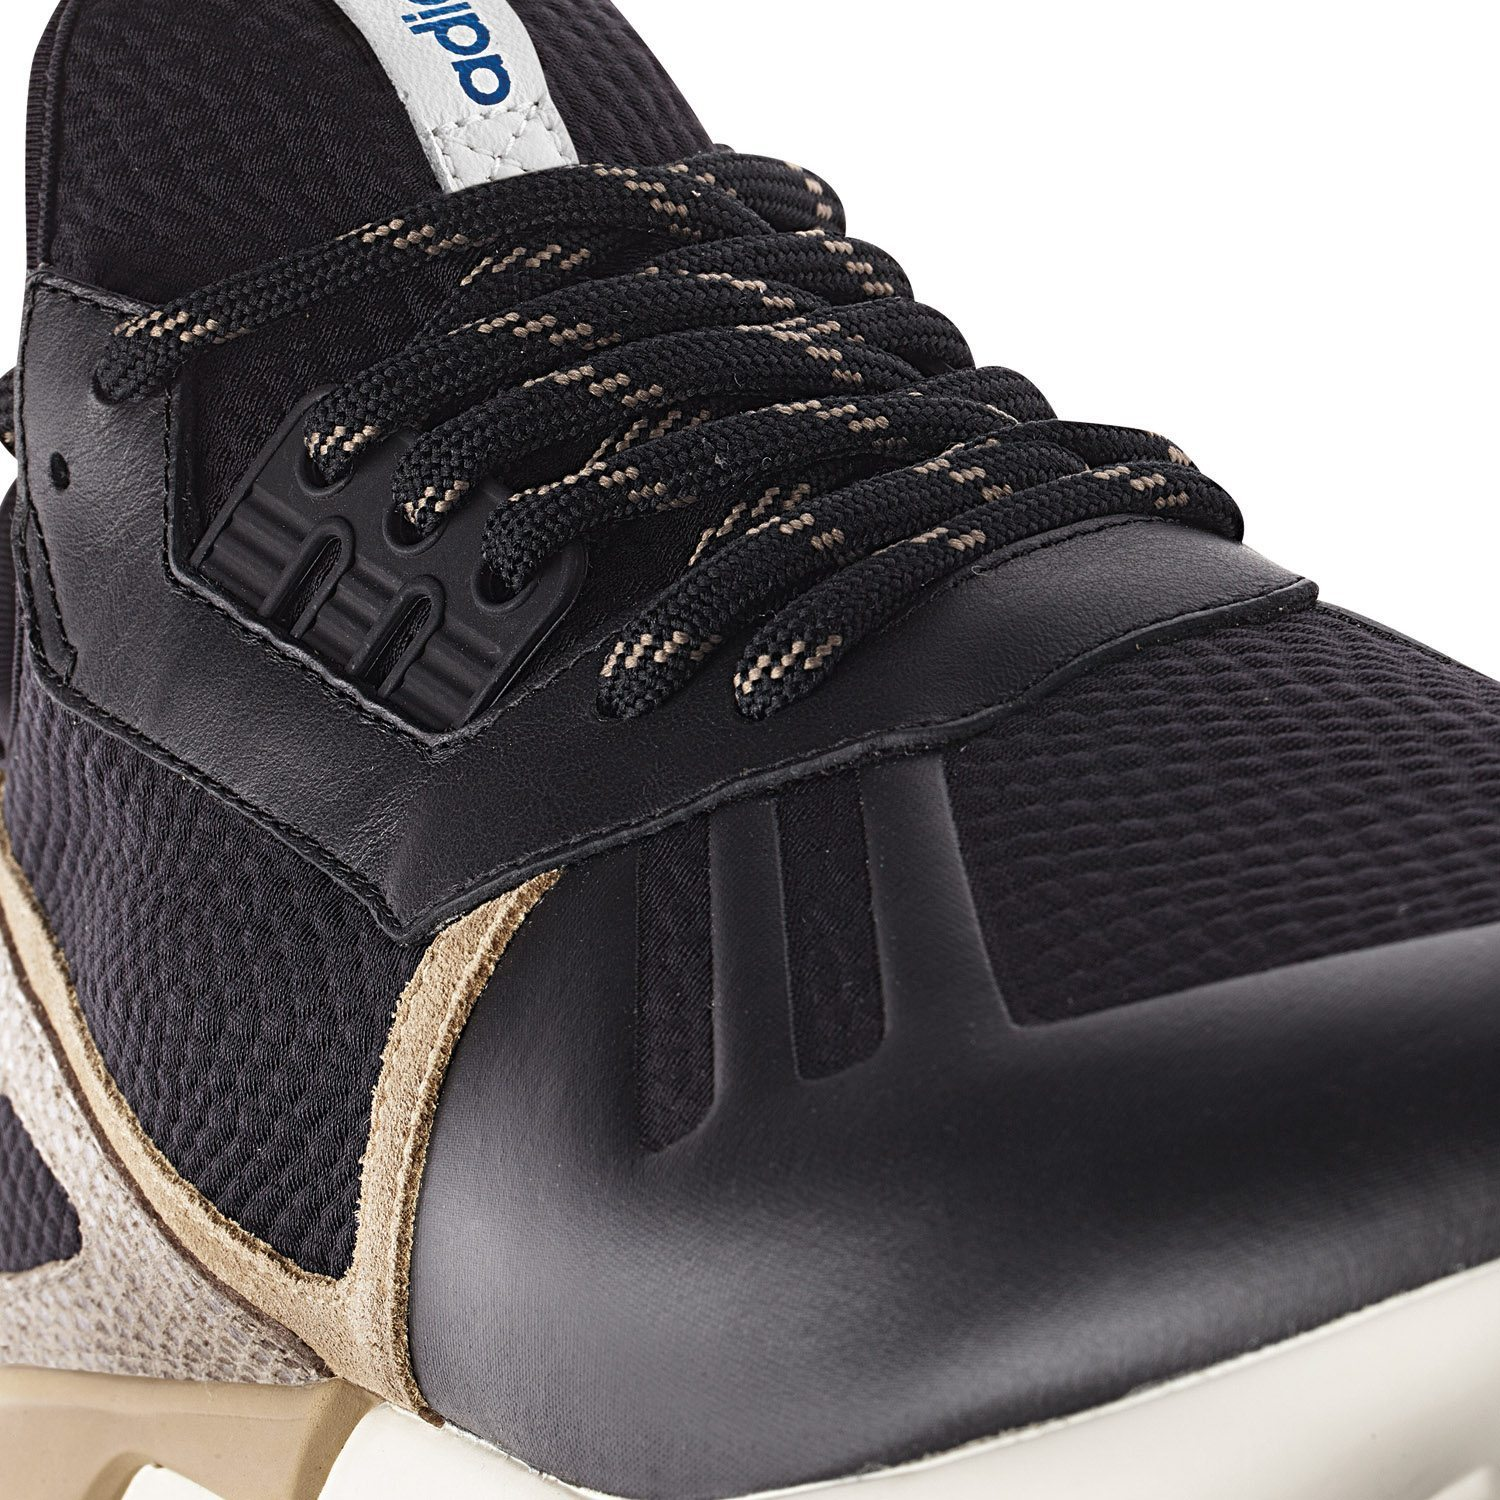 adidas Originals Tubular Runner Snake Pack 8